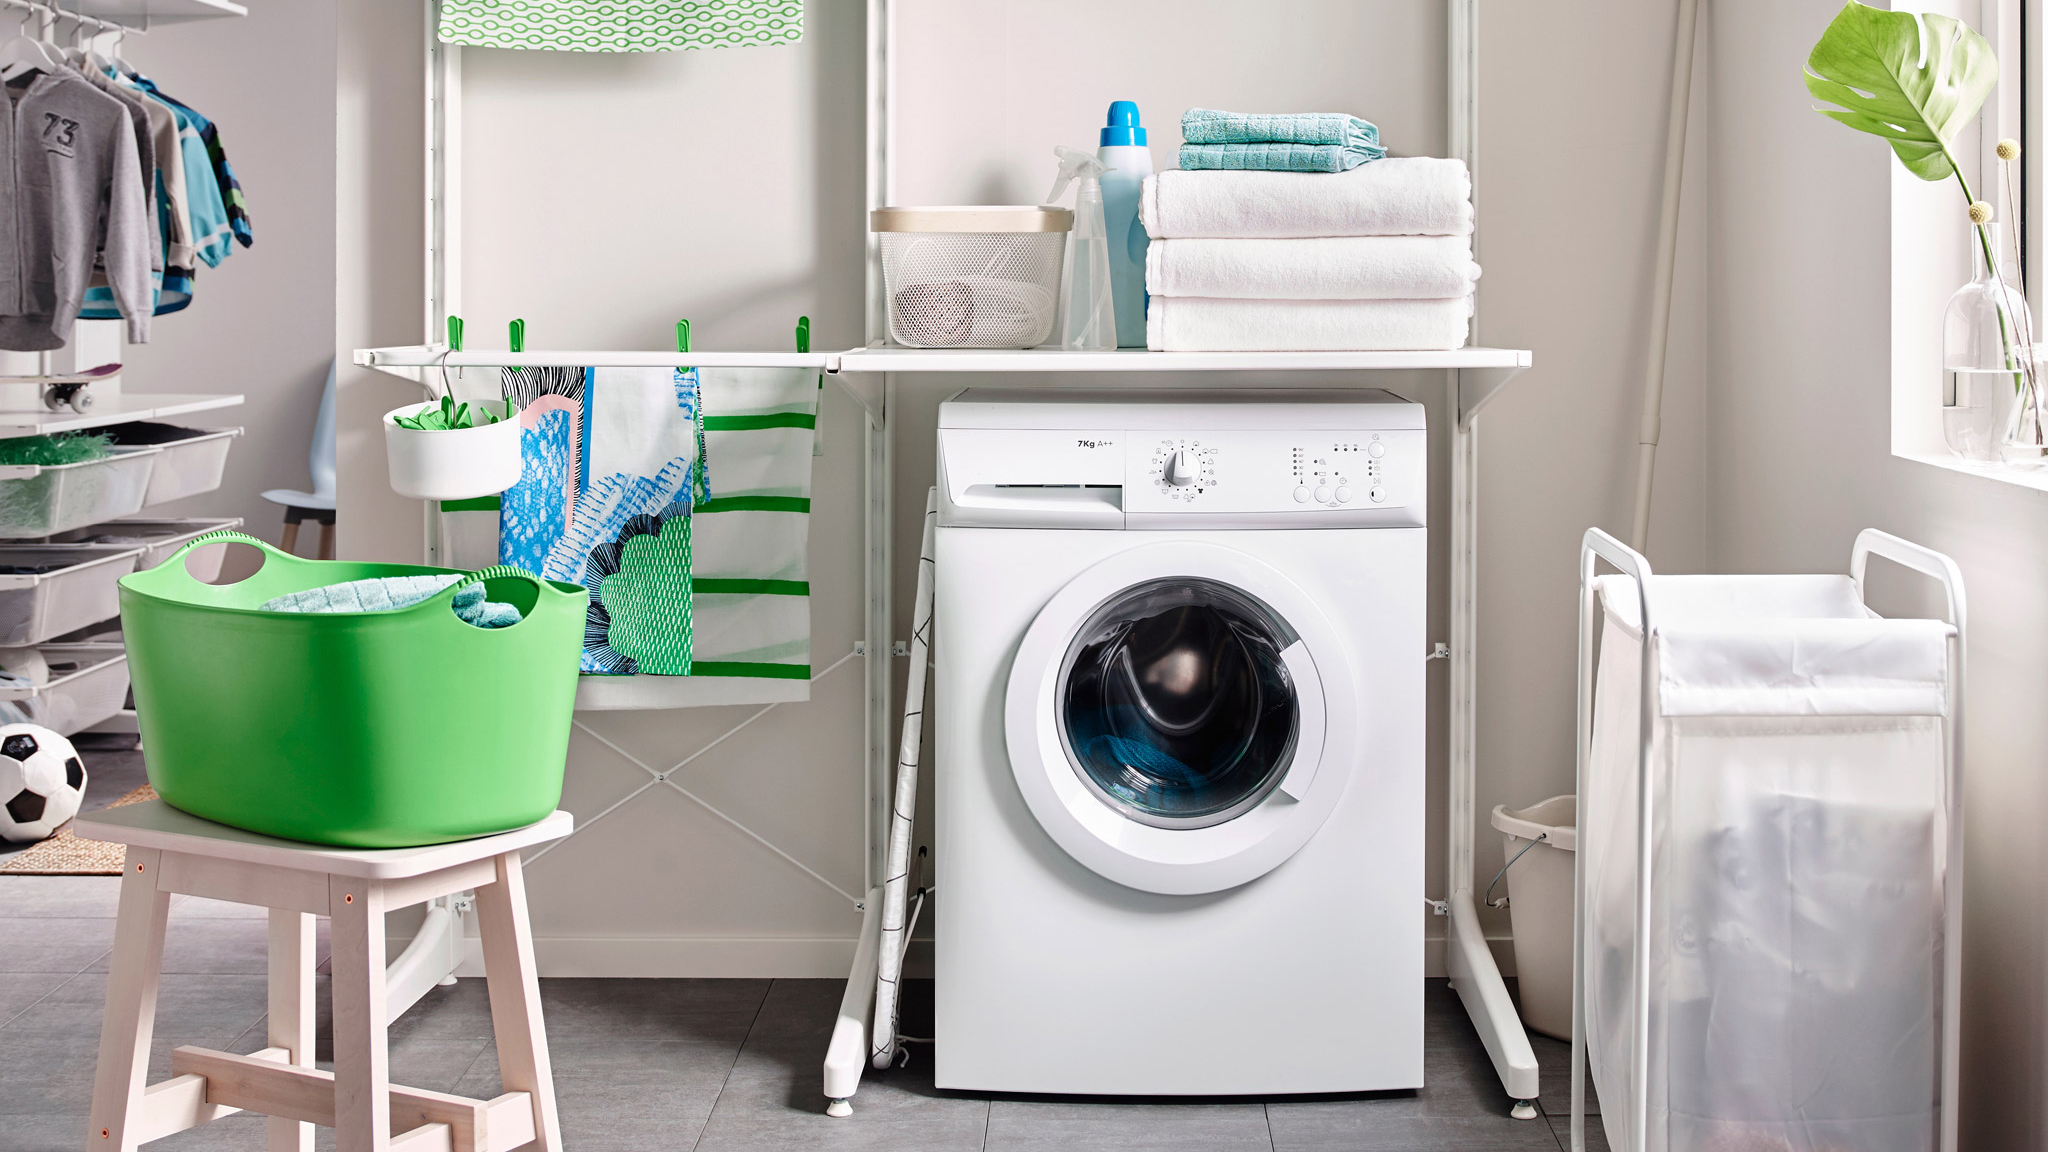 These 4 Ikea Laundry Room Ideas Can Make Even The Smallest